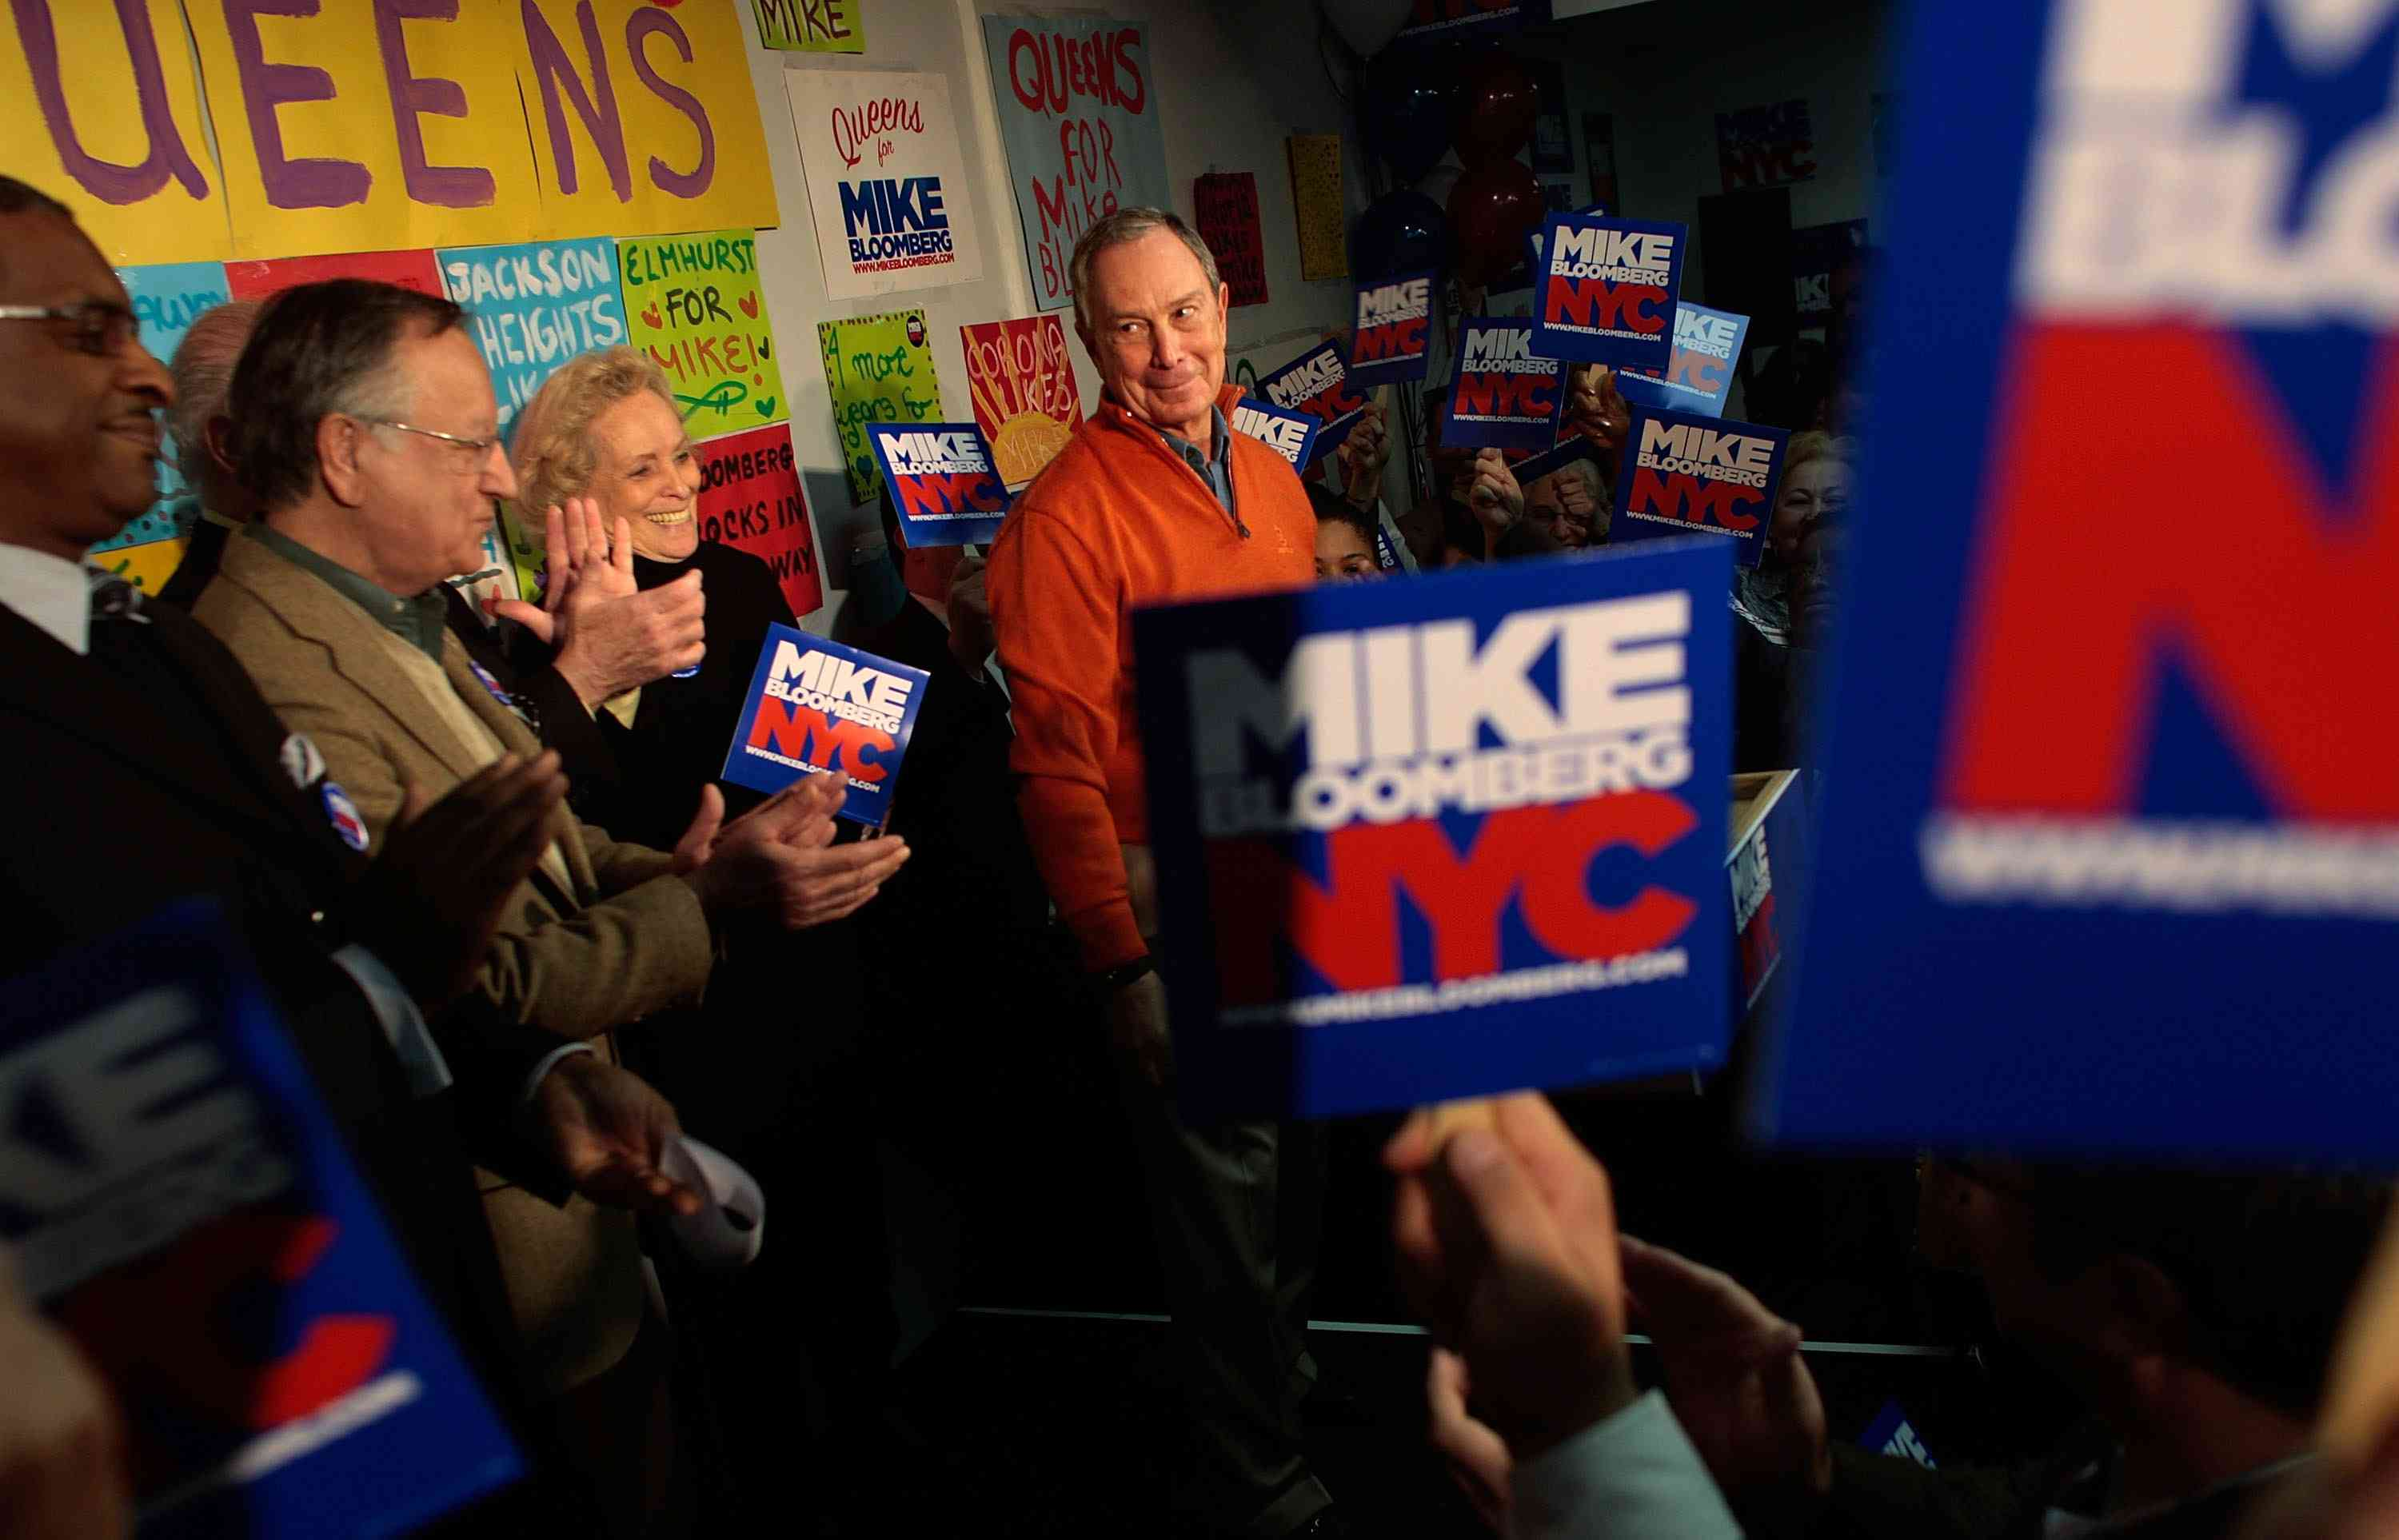 Mayor Bloomberg Opens Campaign Offices Across The City